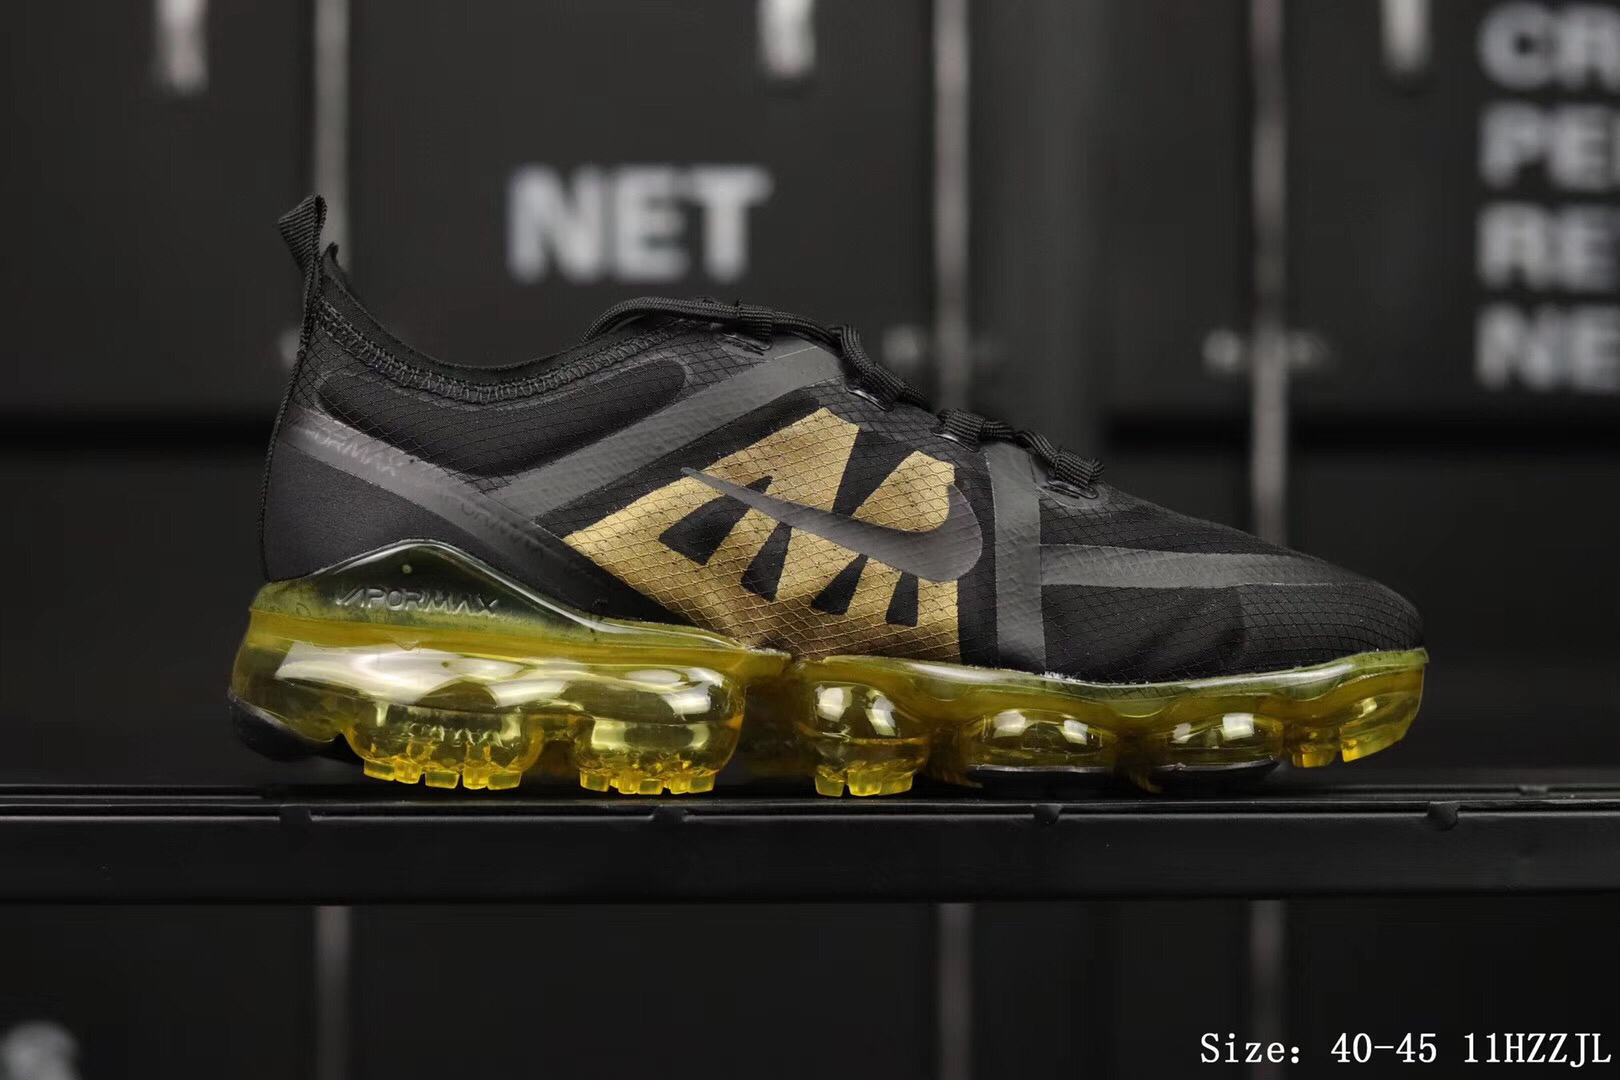 Nike Air Vapormax 2019 Mesh Black Gold Shoes For Women